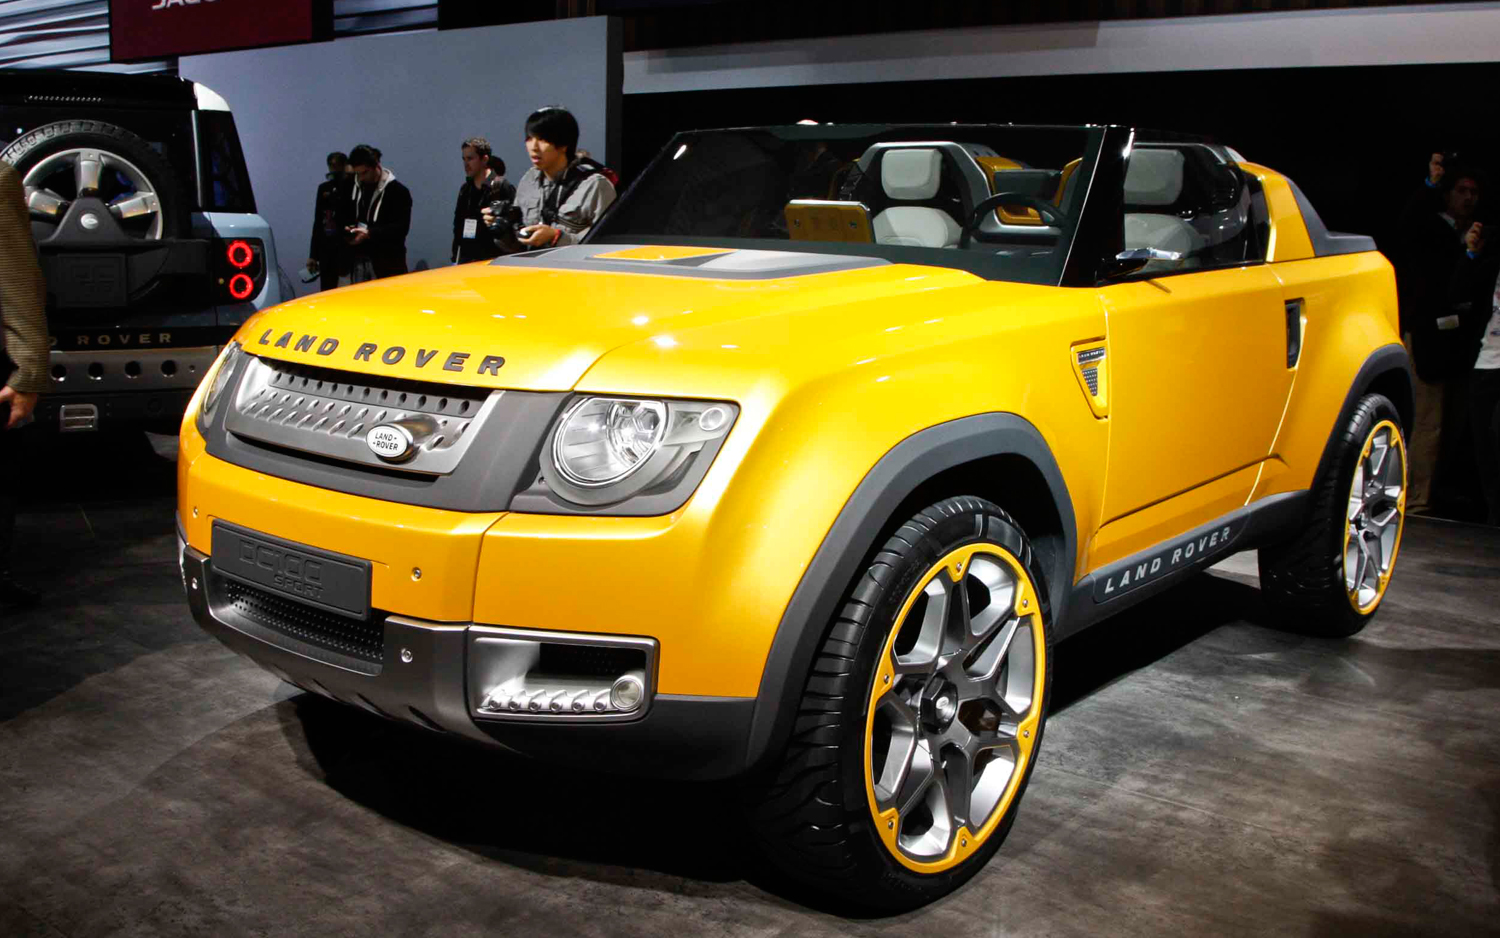 https://enthusiastnetwork.s3.amazonaws.com/uploads/sites/5/2011/11/Land-Rover-DC100-Sport-concept-front-view.jpg?impolicy=entryimage